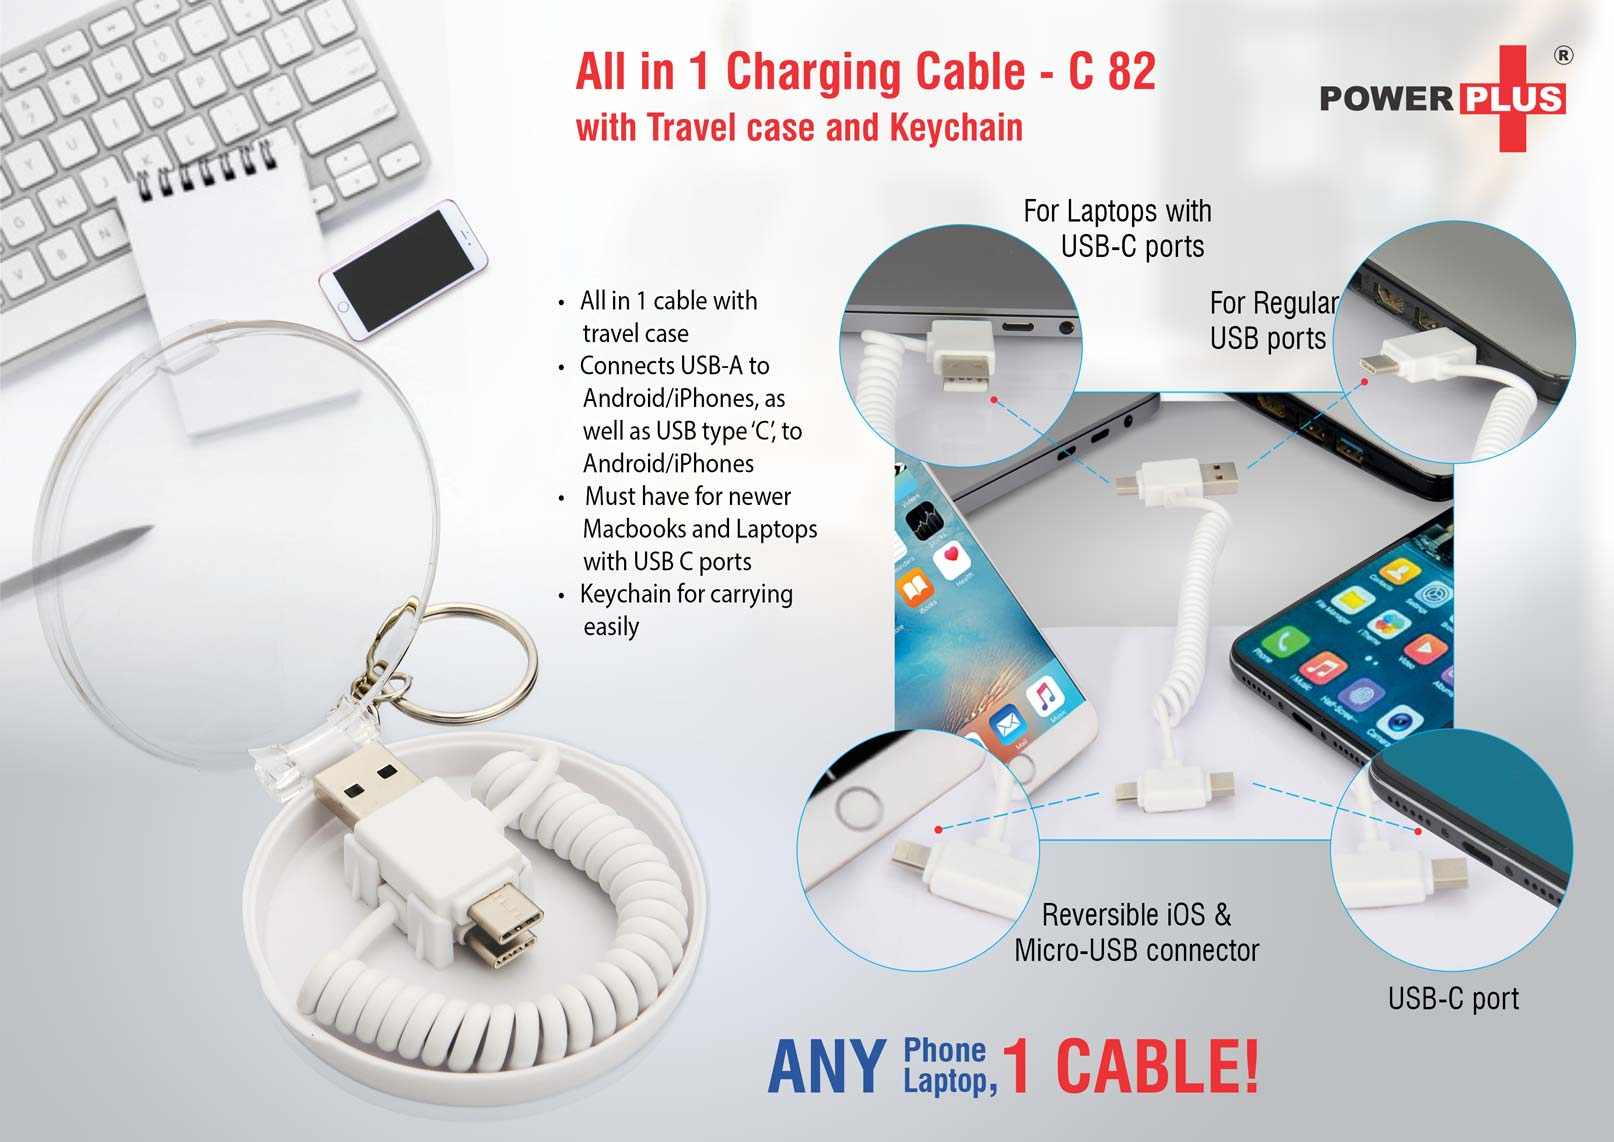 C82 - All in 1 charging cable with travel case and keychain